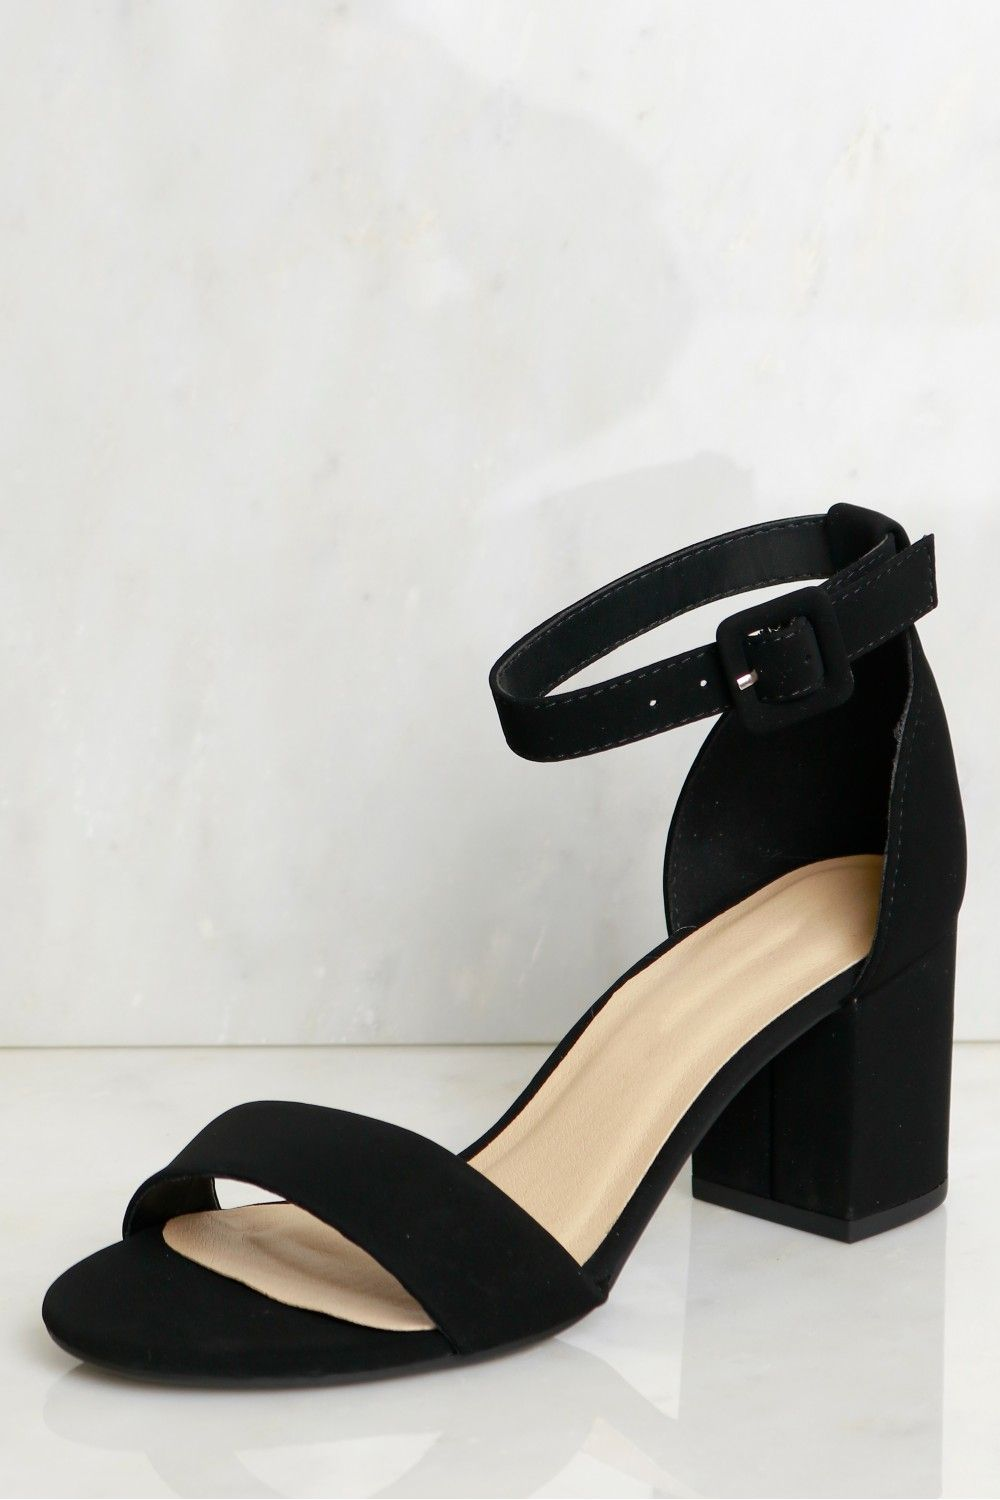 07e28052485 Low Strappy Heel Black in 2019